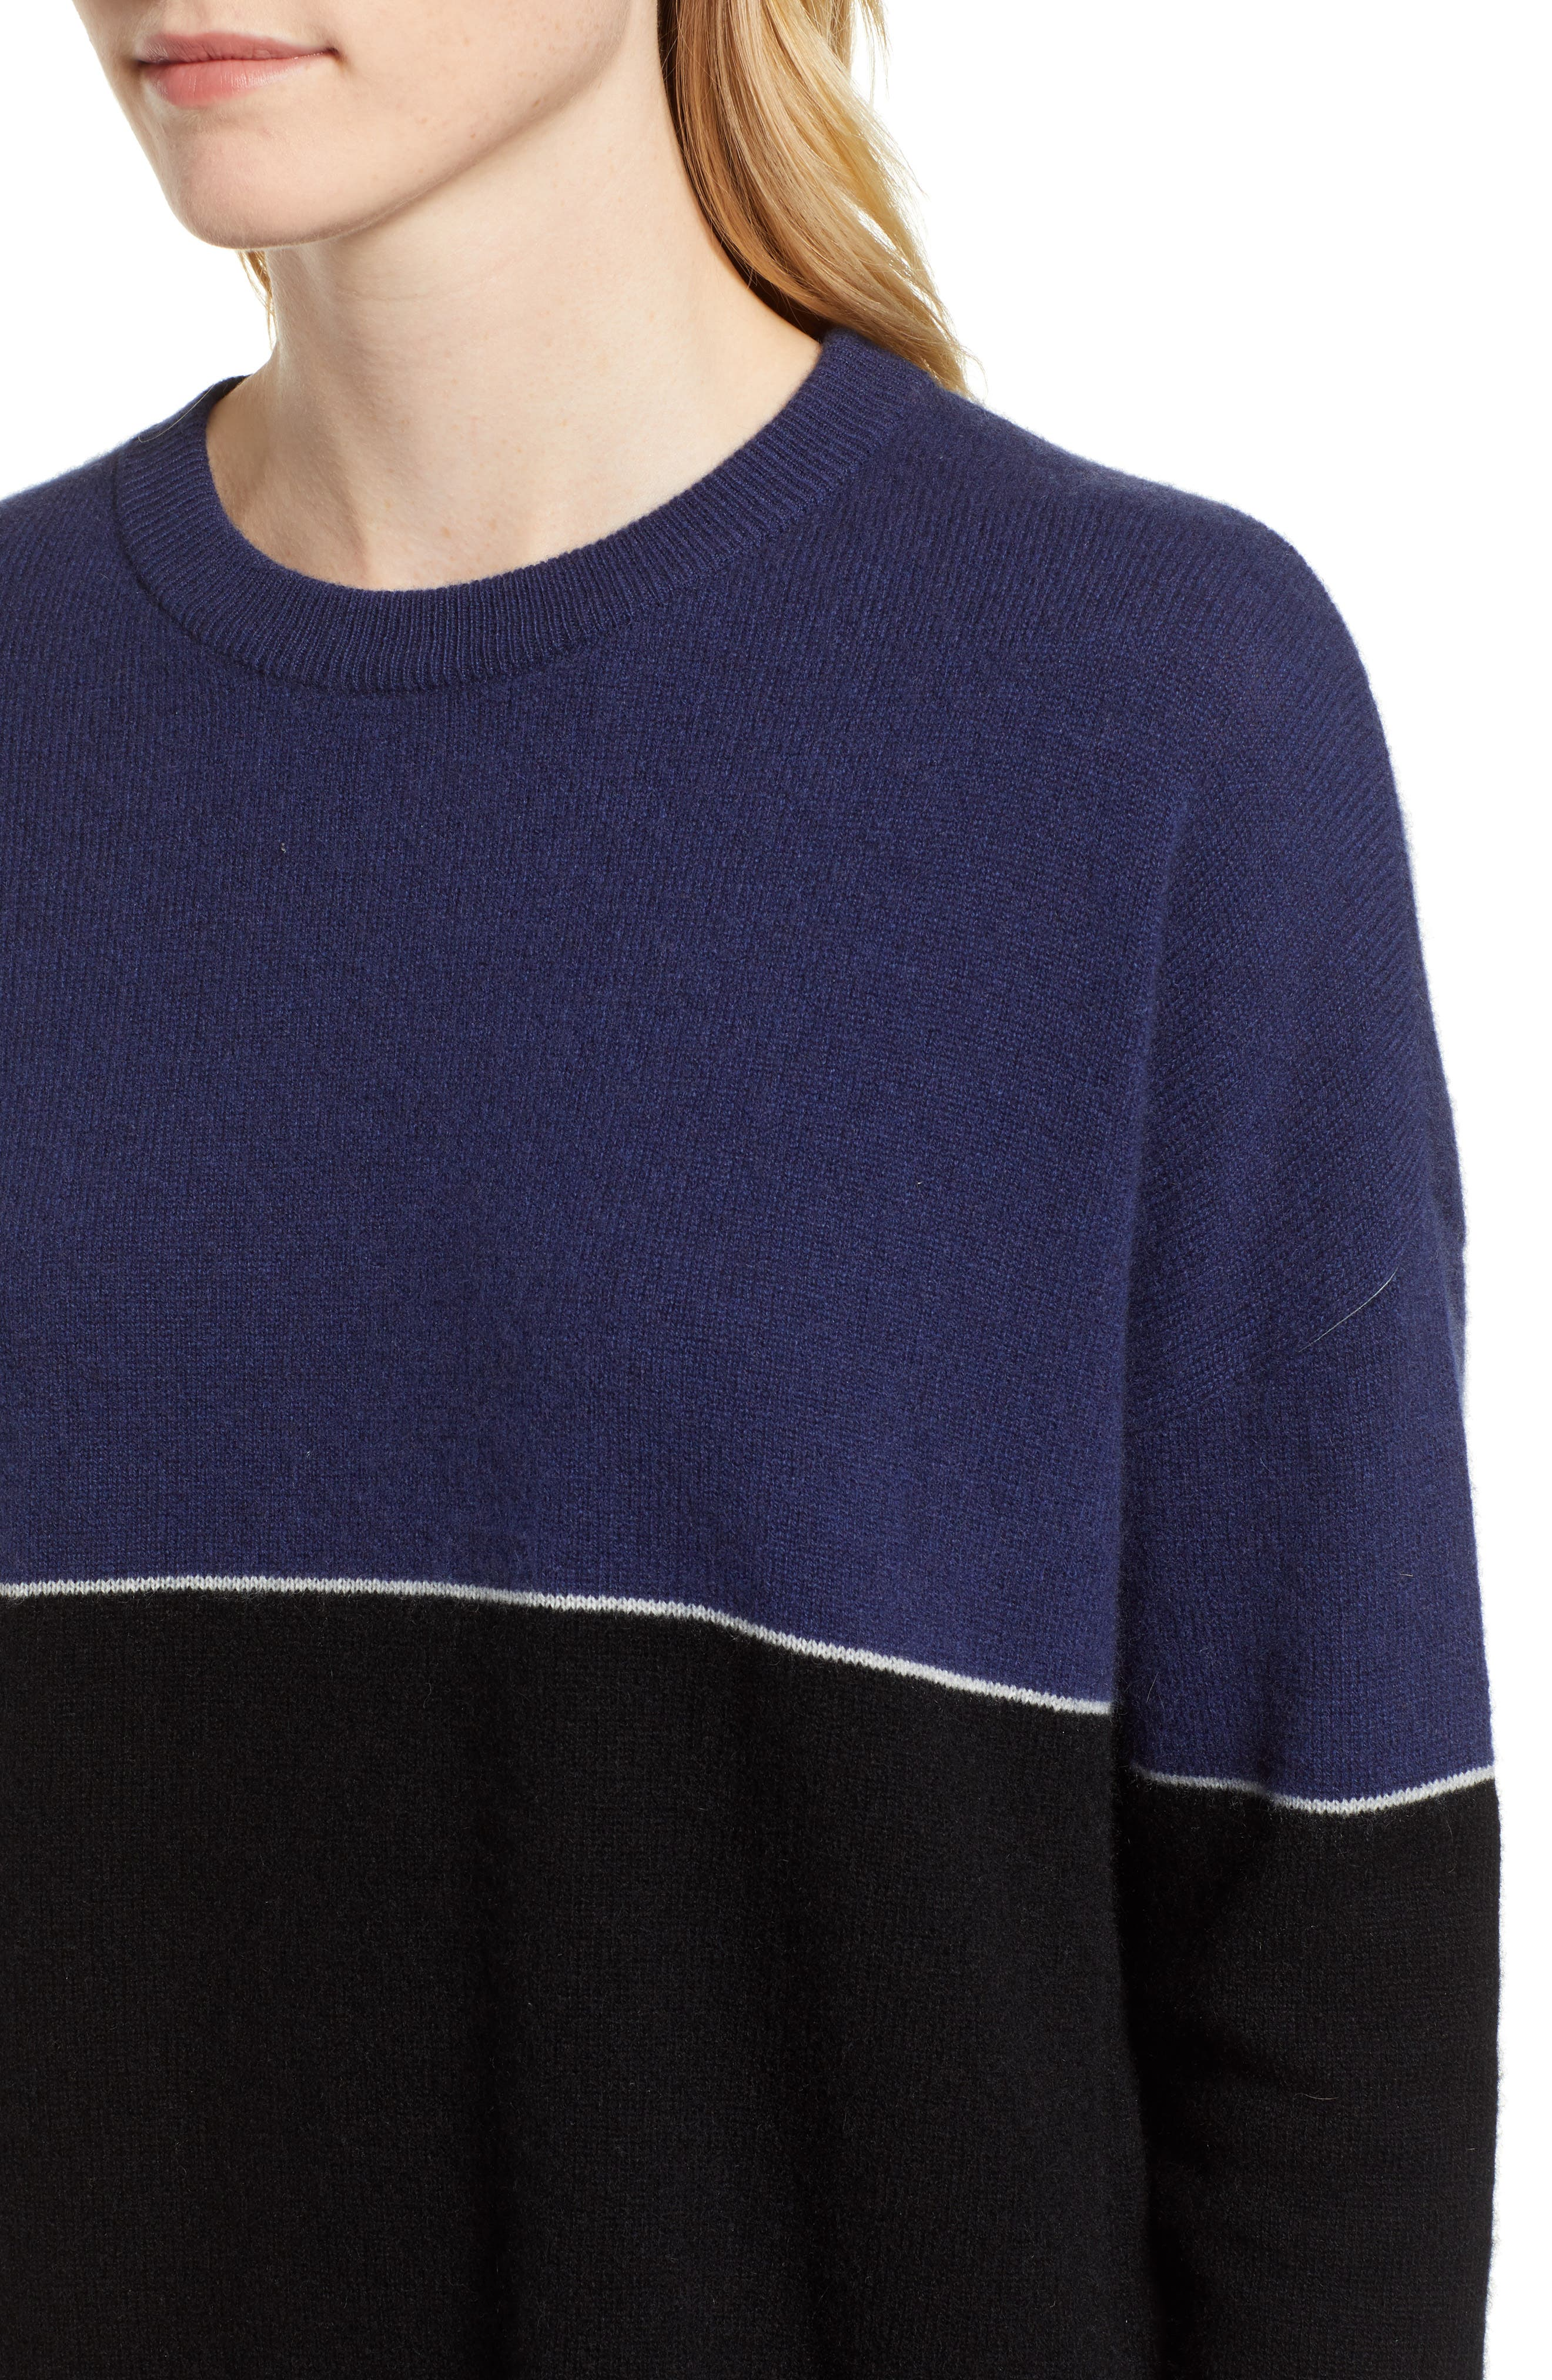 Cashmere Colorblock Sweater,                             Alternate thumbnail 4, color,                             001